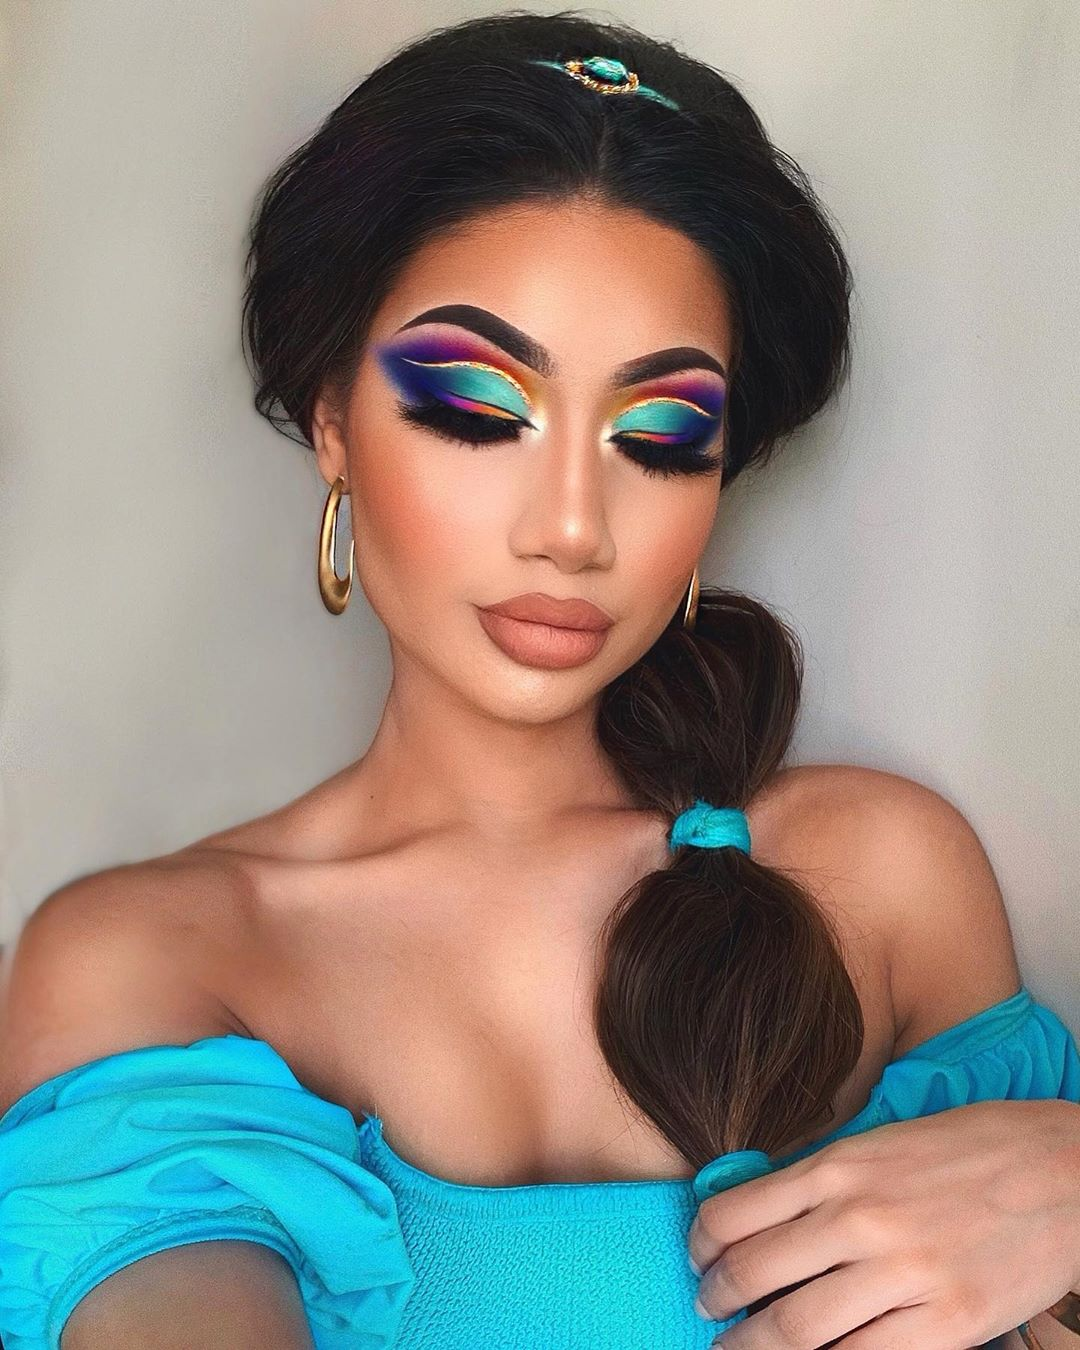 Beauty Bay On Twitter Princess Jasmine Vibes This Look Is